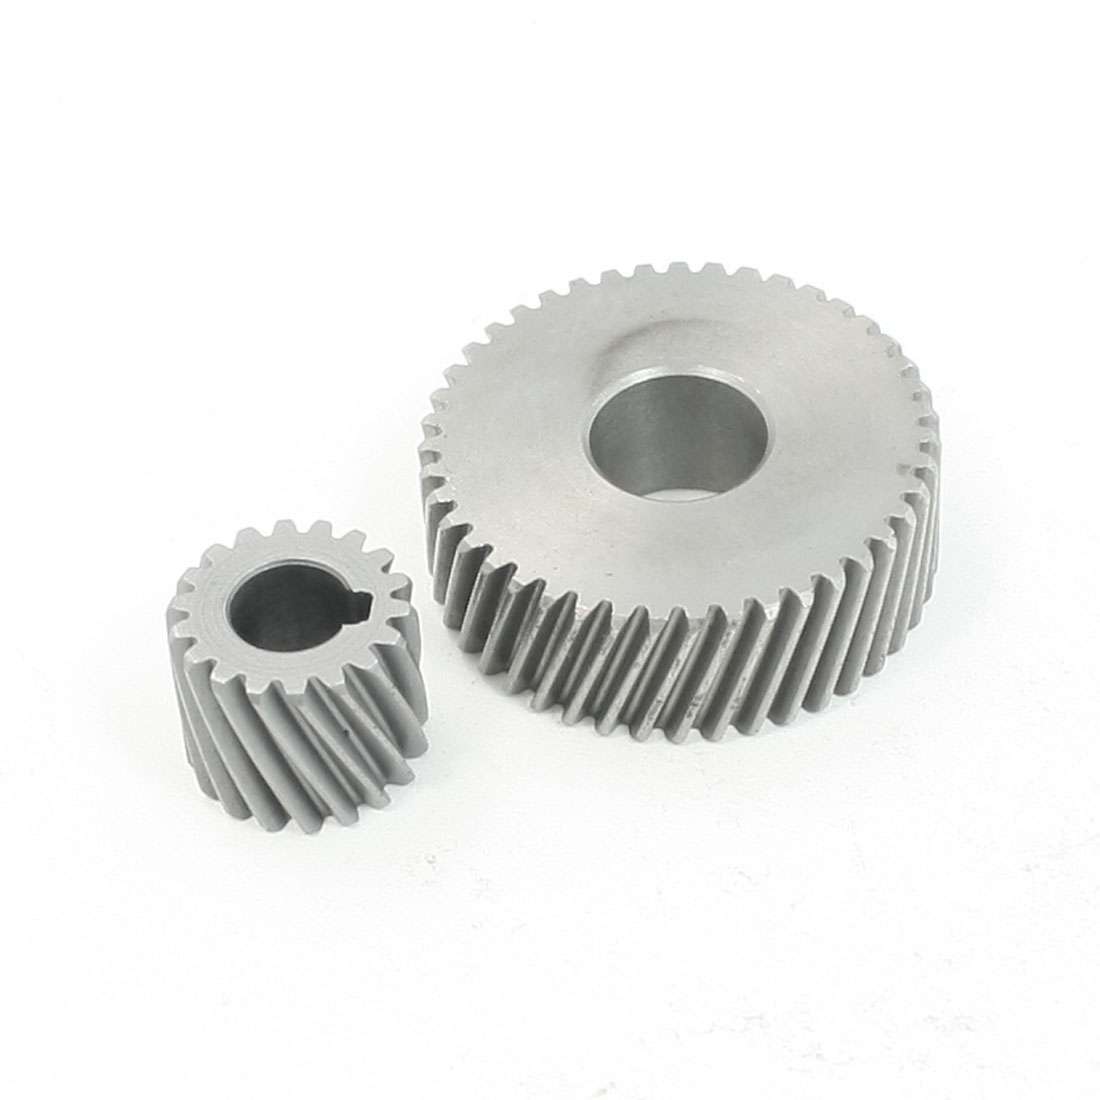 Pair Electric Power Tool Helical Gears for Hitachi 4SB Circular Saw